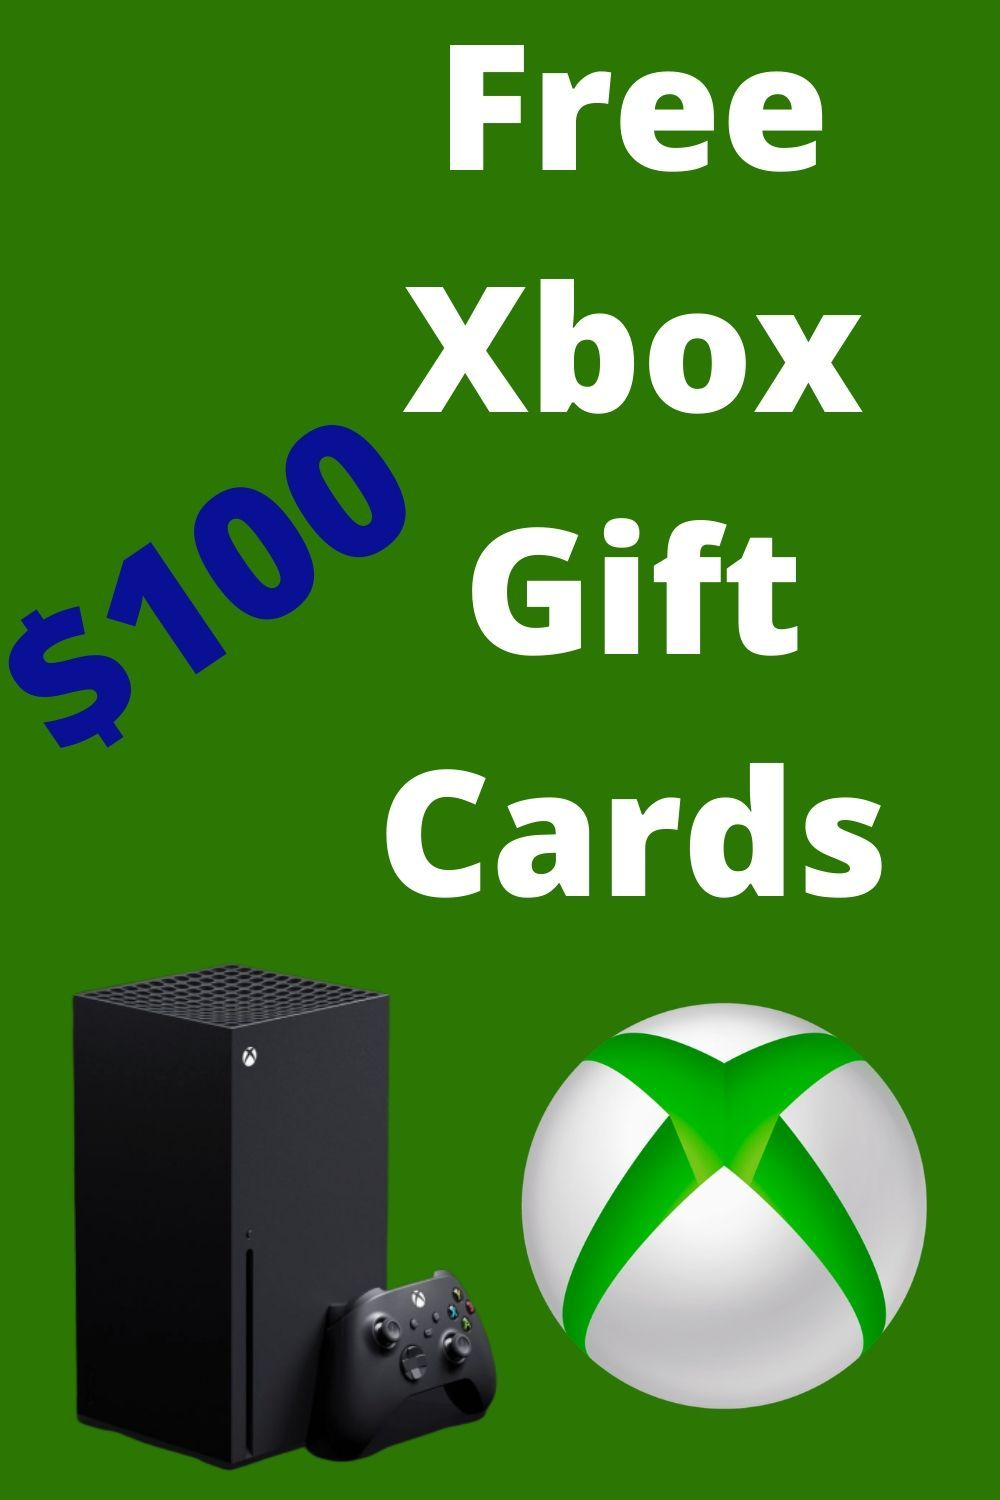 Fee xbox gift cards giveaway freexboxgiftcards